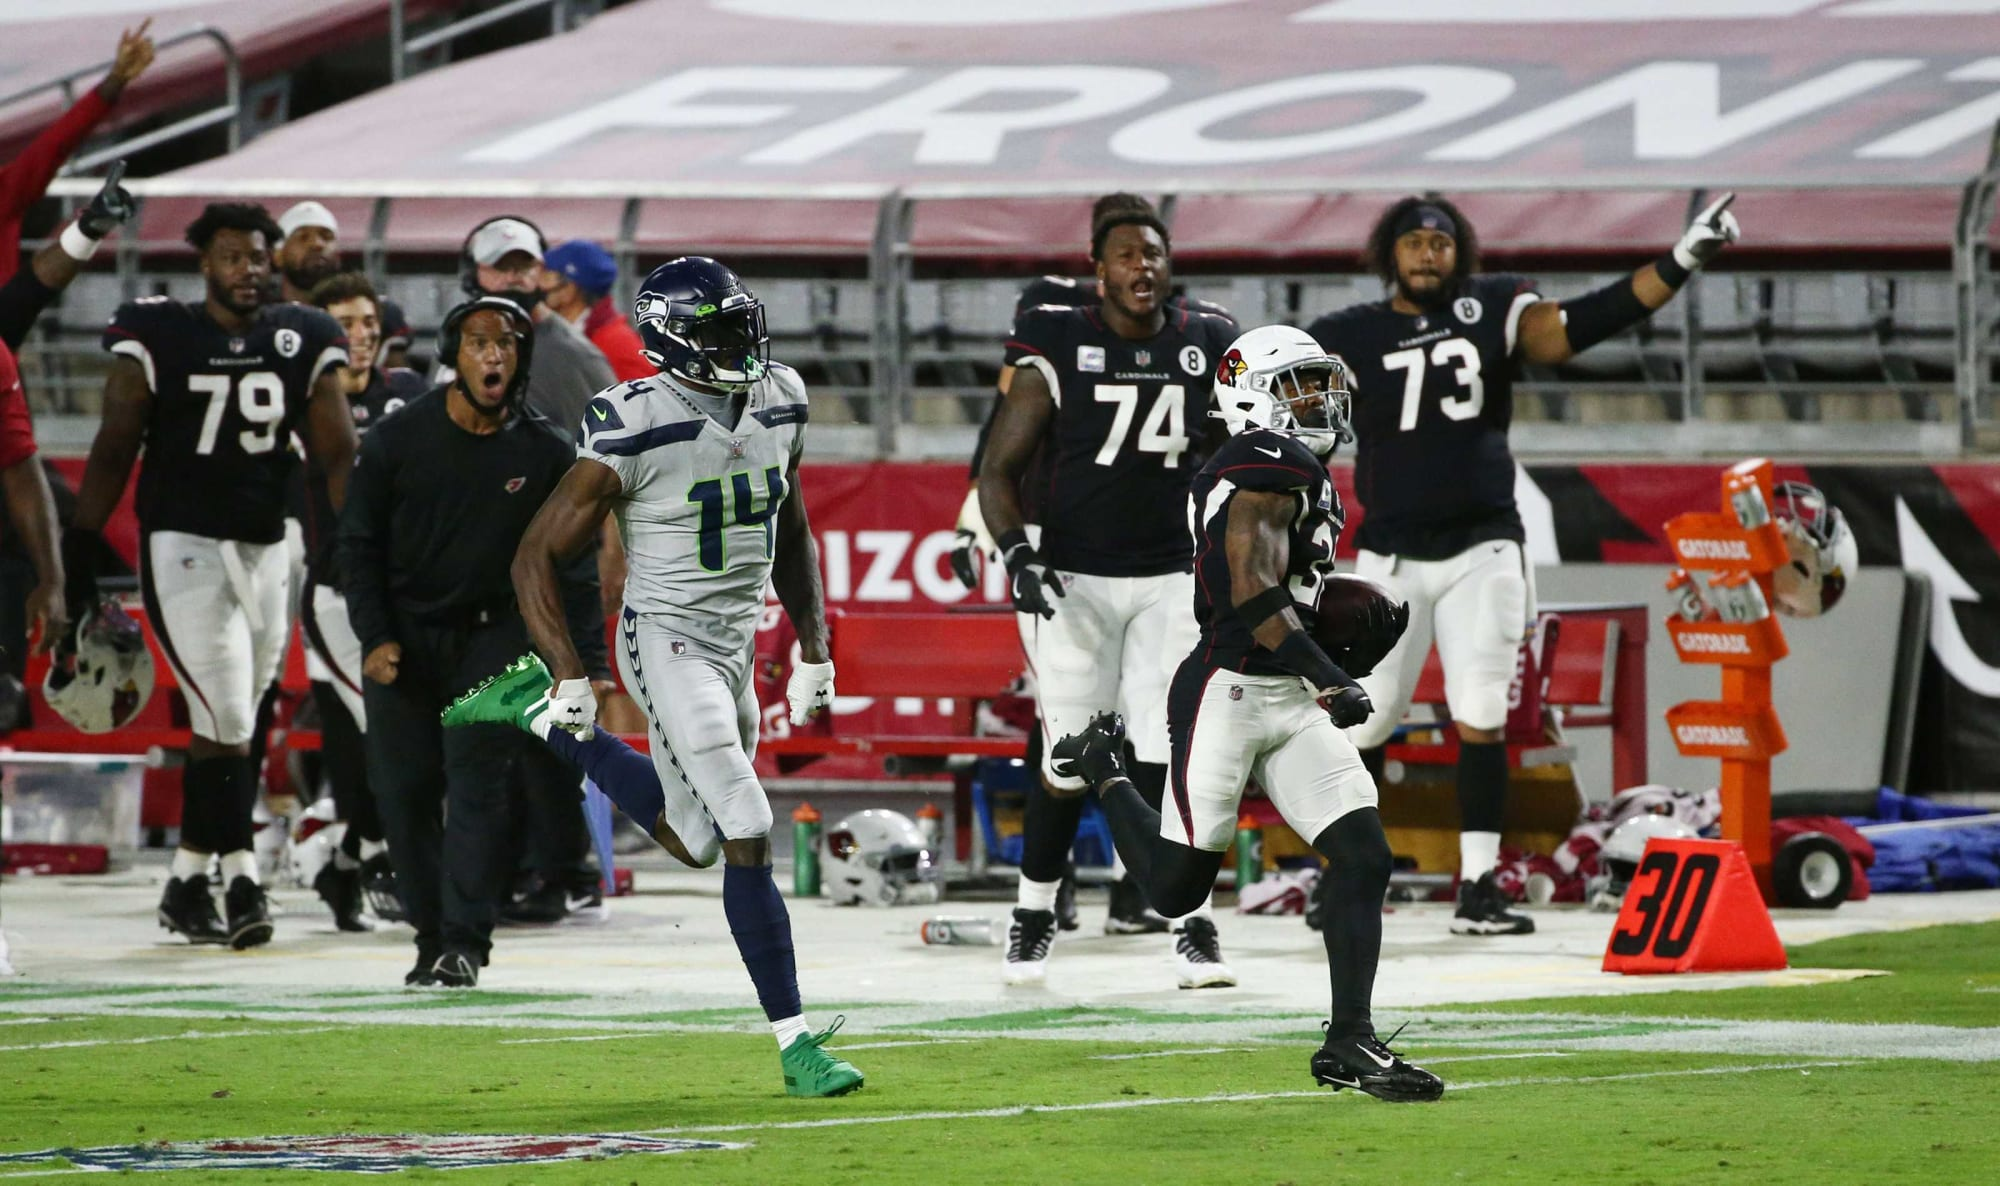 Philadelphia Eagles: D.K. Metcalf has more hustle than Nickell Robey Coleman